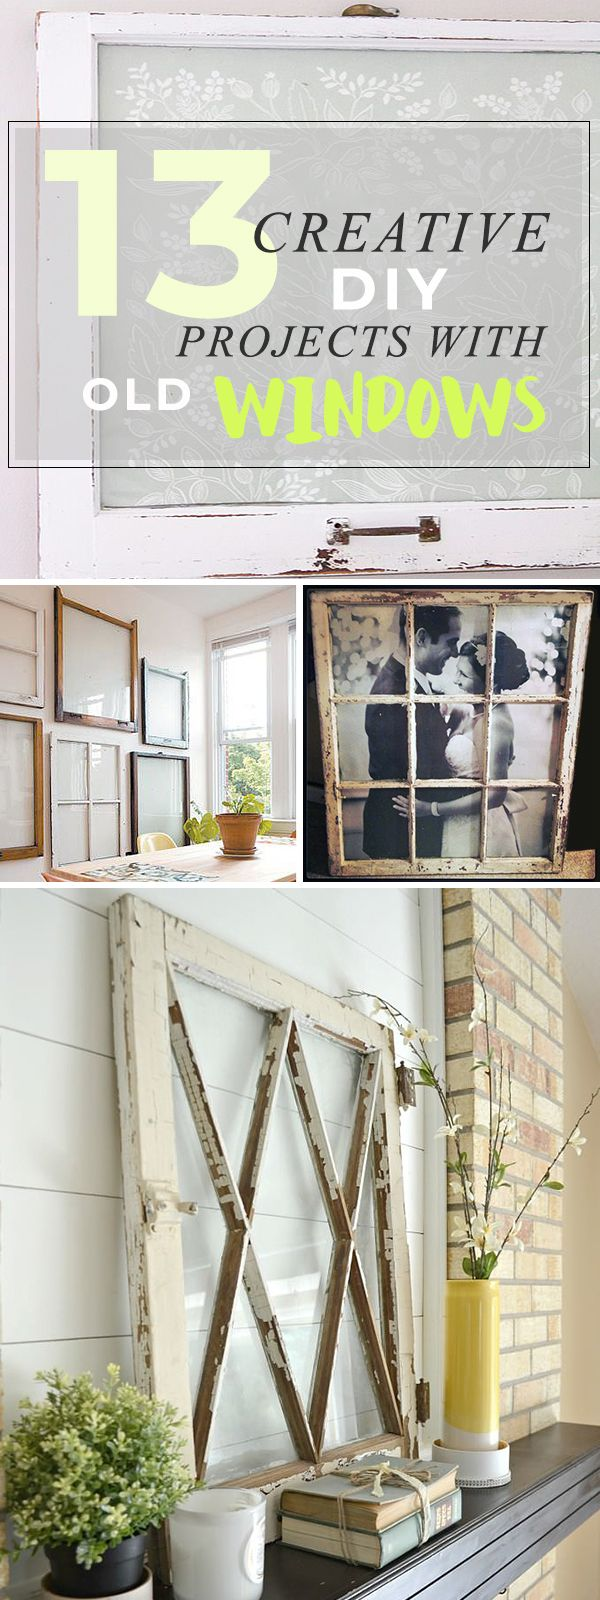 13 Creative DIY Projects with Old Windows • Try these DIY old window projects ...